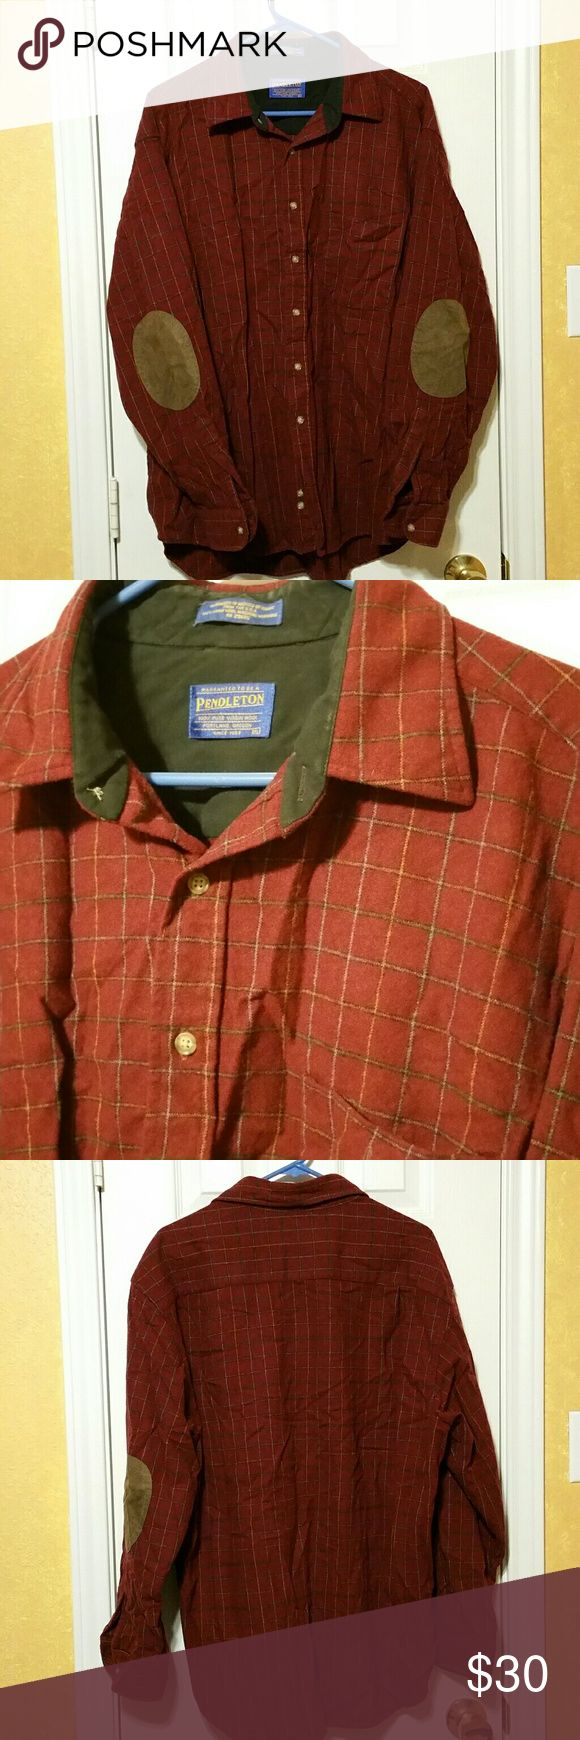 Pendleton 100% Wool button up Mens XL Great condition Men's XL Pendleton wool button up with elbow patches. Beautiful maroon plaid with extra buttons still attached. Doesn't look like it was worn much if at all! Pendleton Shirts Casual Button Down Shirts